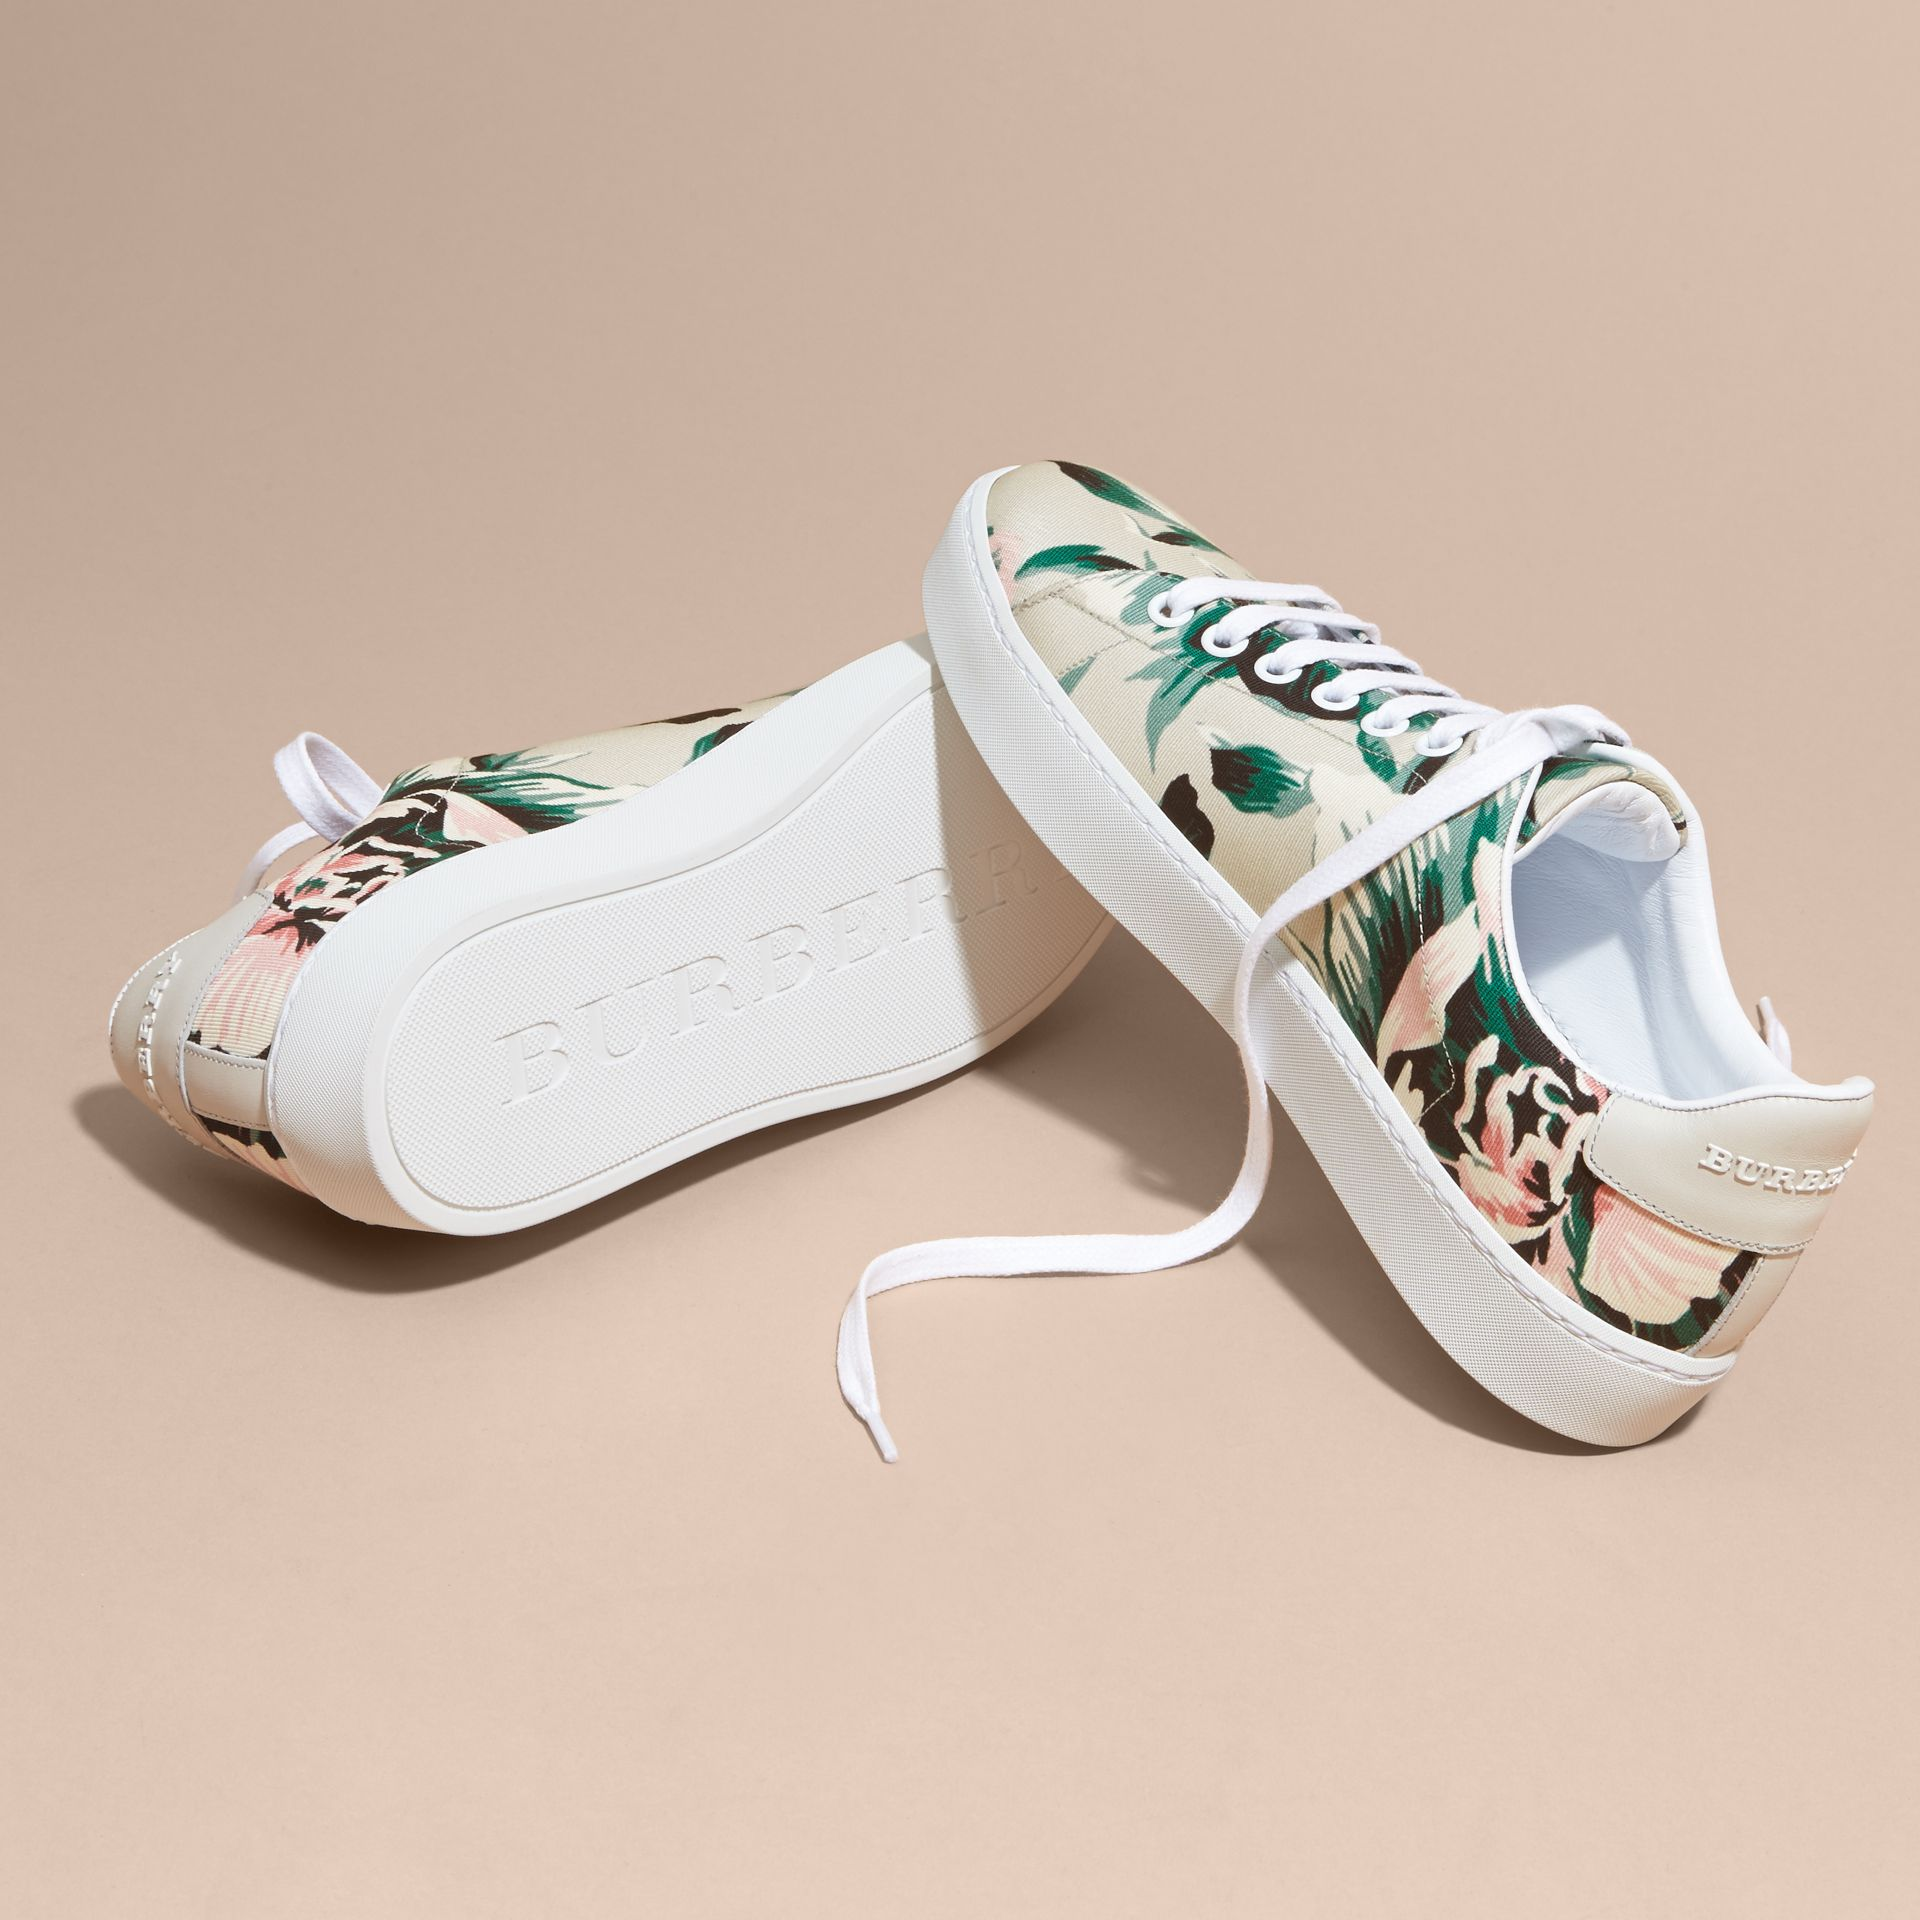 Peony Rose Print Canvas and Leather Sneakers Emerald Green - gallery image 5